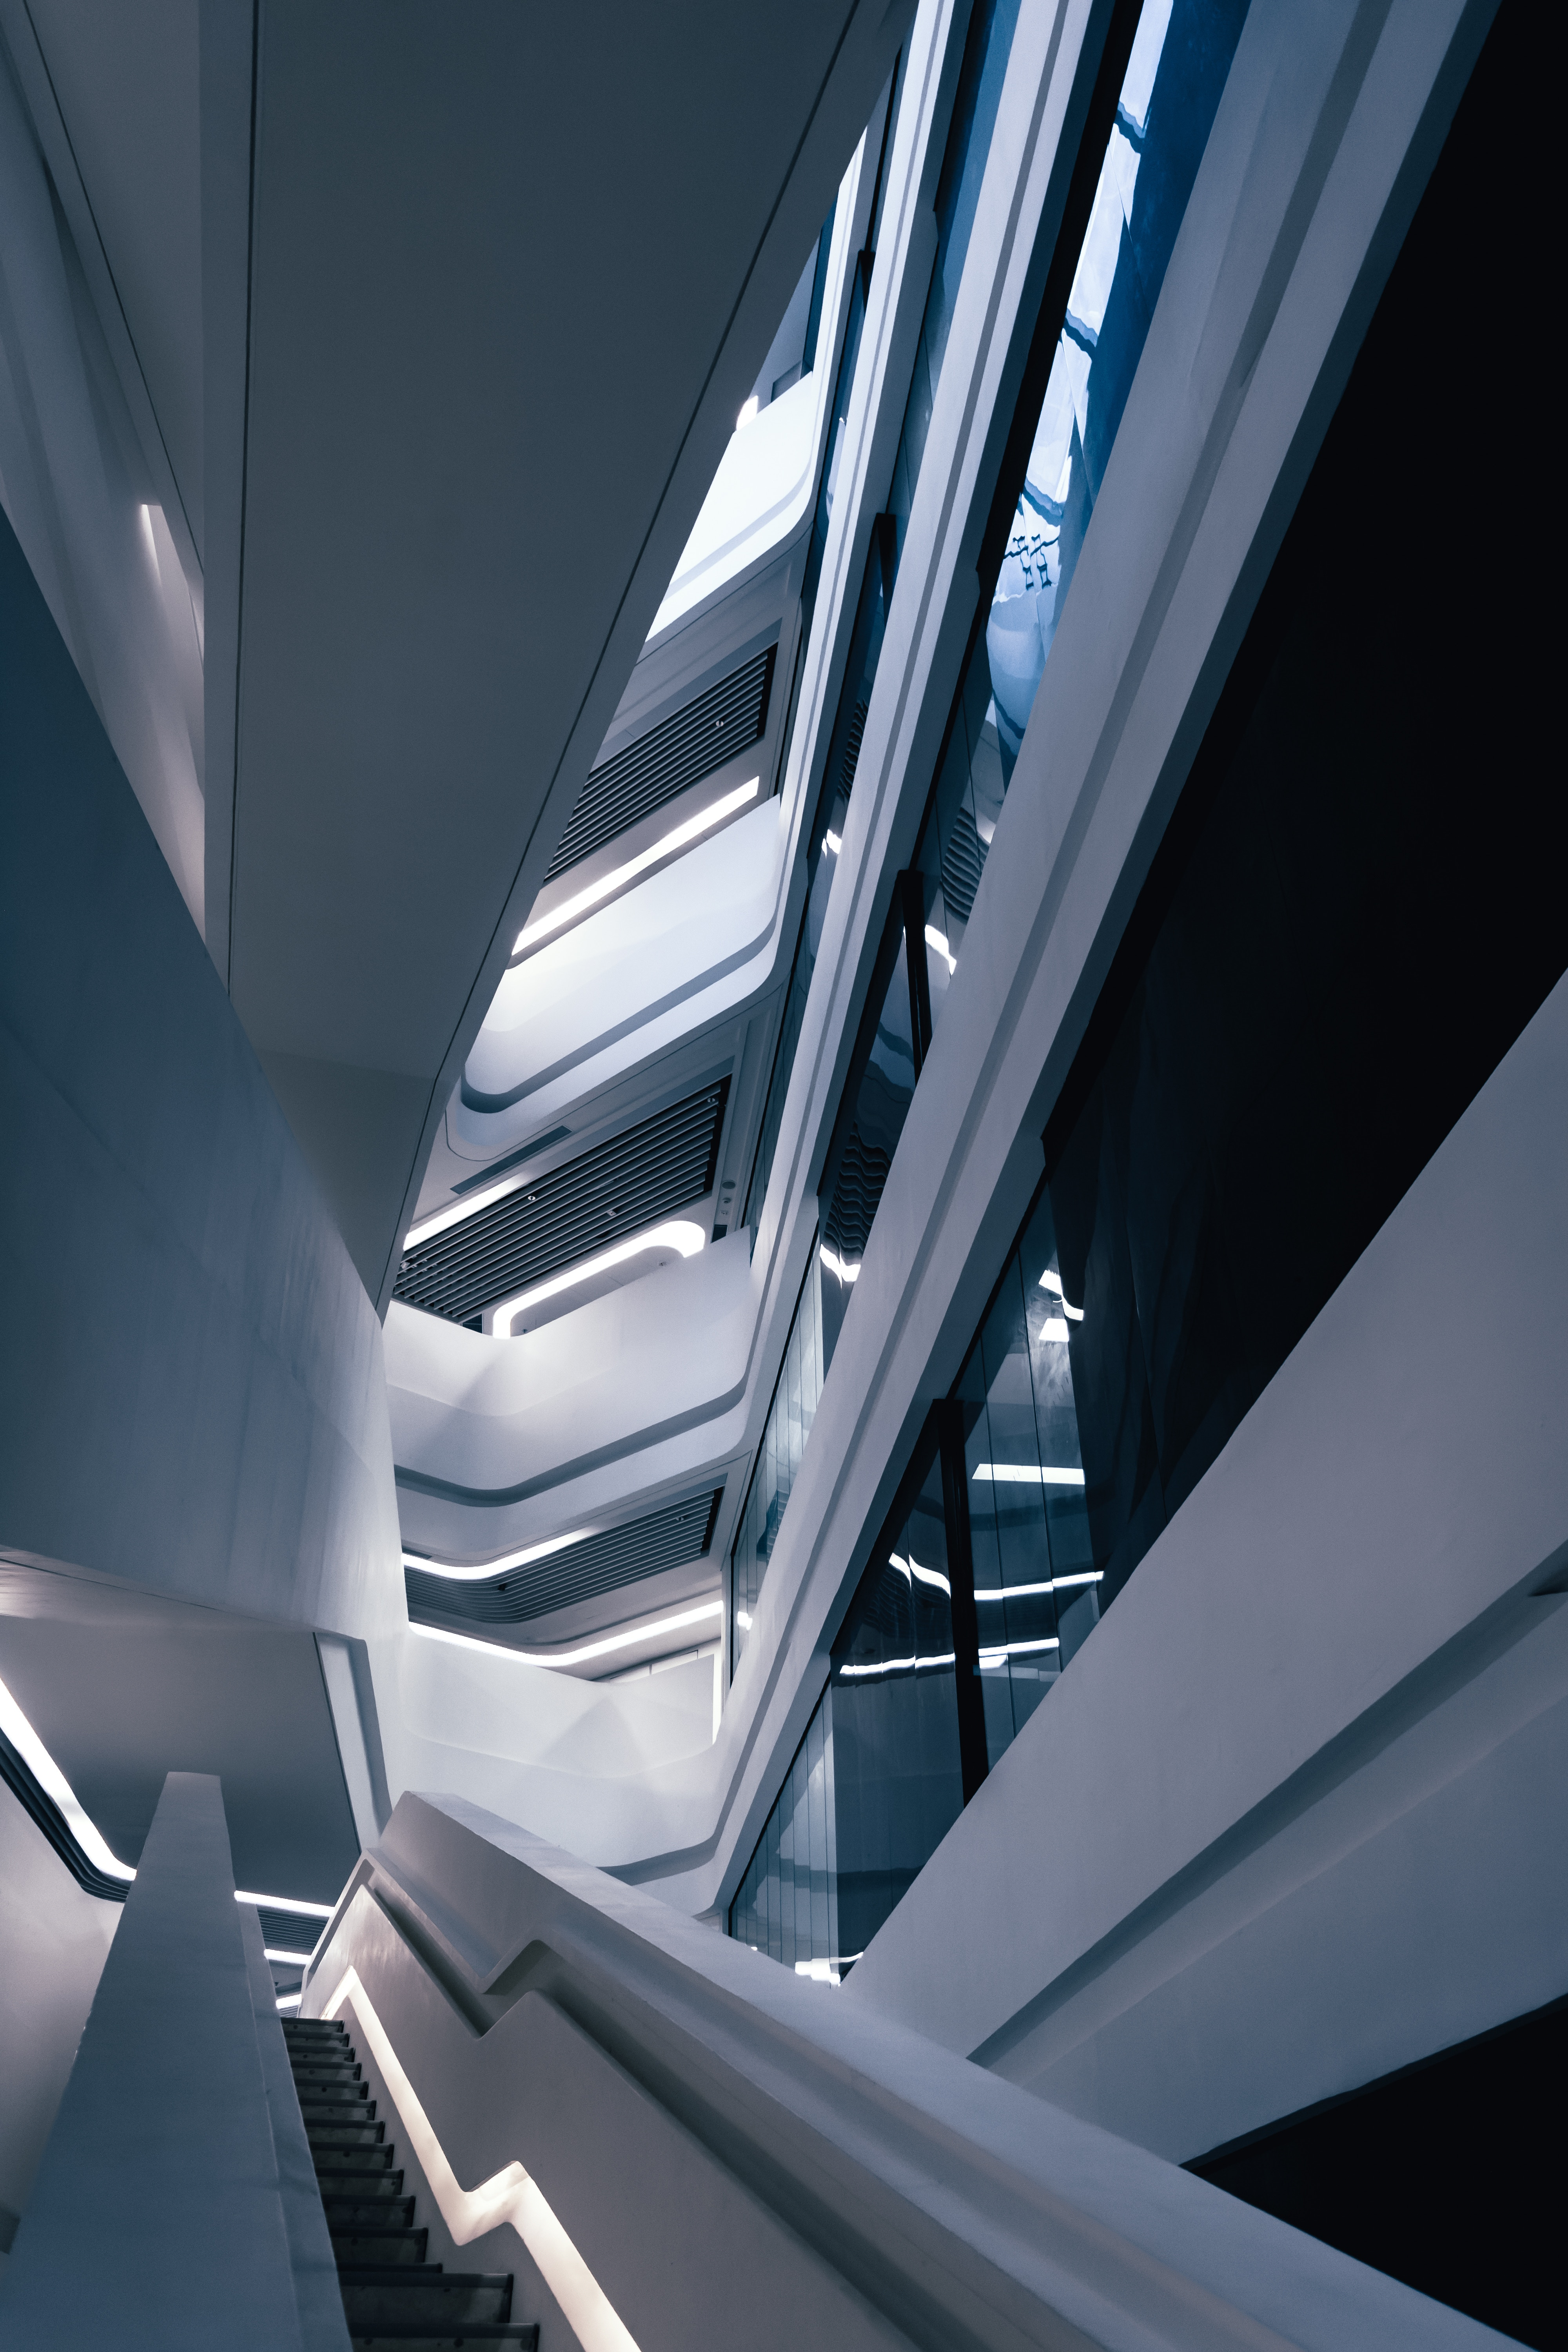 112146 download wallpaper Architecture, Building, Minimalism, Design, Stairs, Ladder screensavers and pictures for free